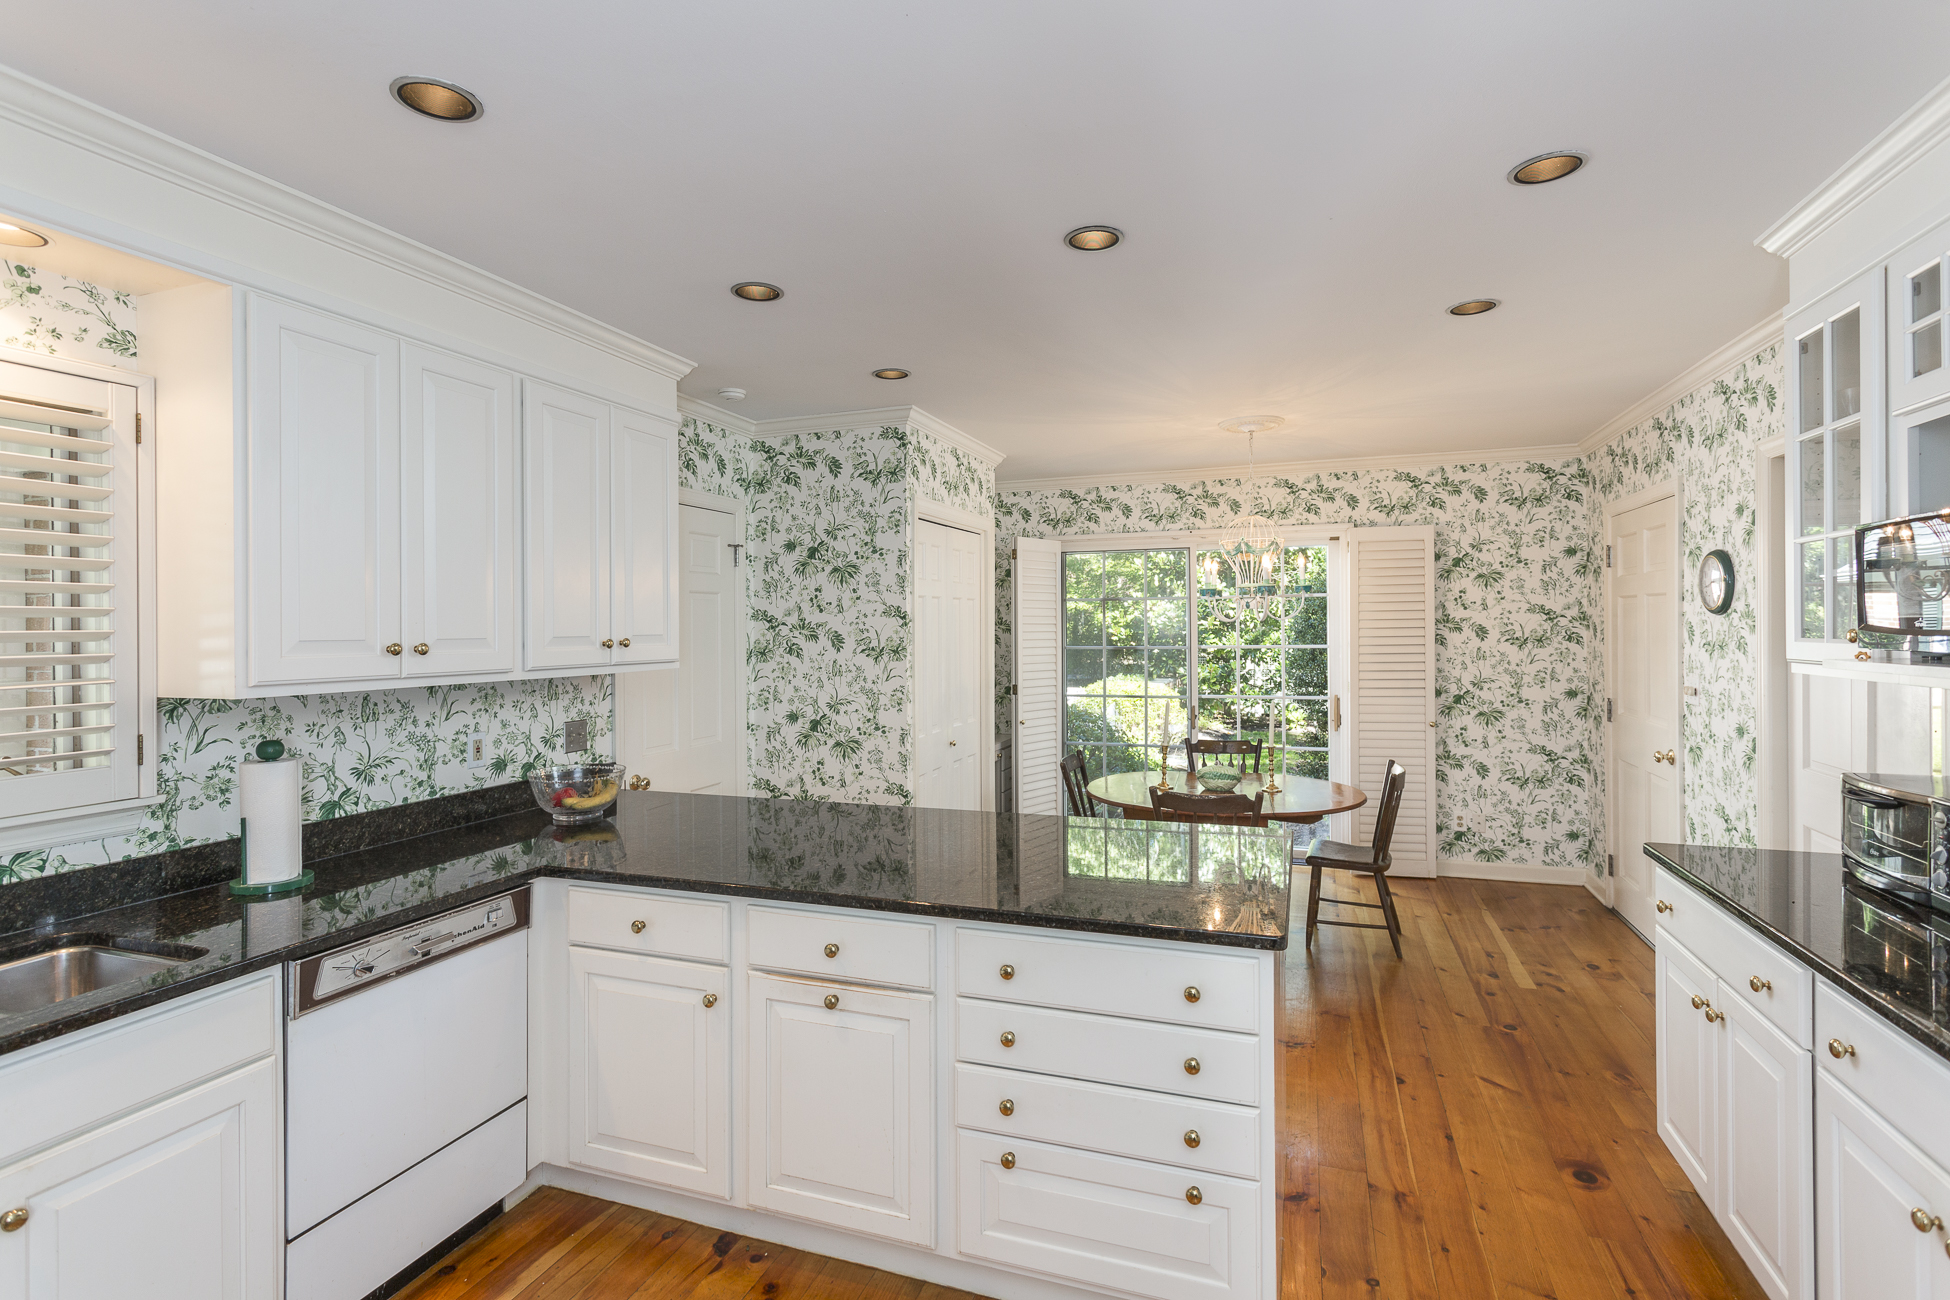 Additional photo for property listing at Marvelously-Appointed In A Scenic Neighborhood 40 Pheasant Hill Road Princeton, New Jersey 08540 United States